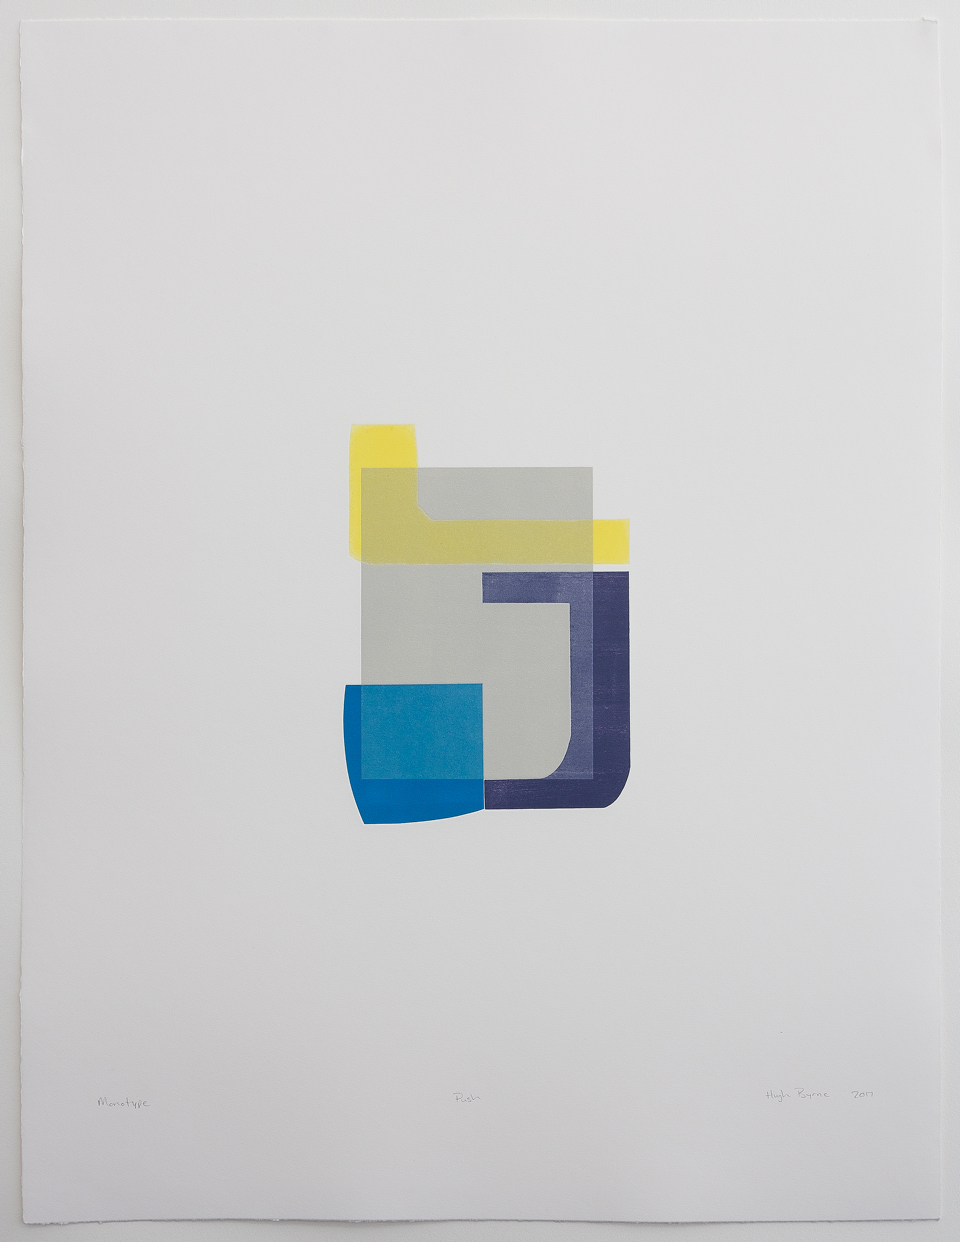 Hugh Byrne, Push, Monotype, Prints